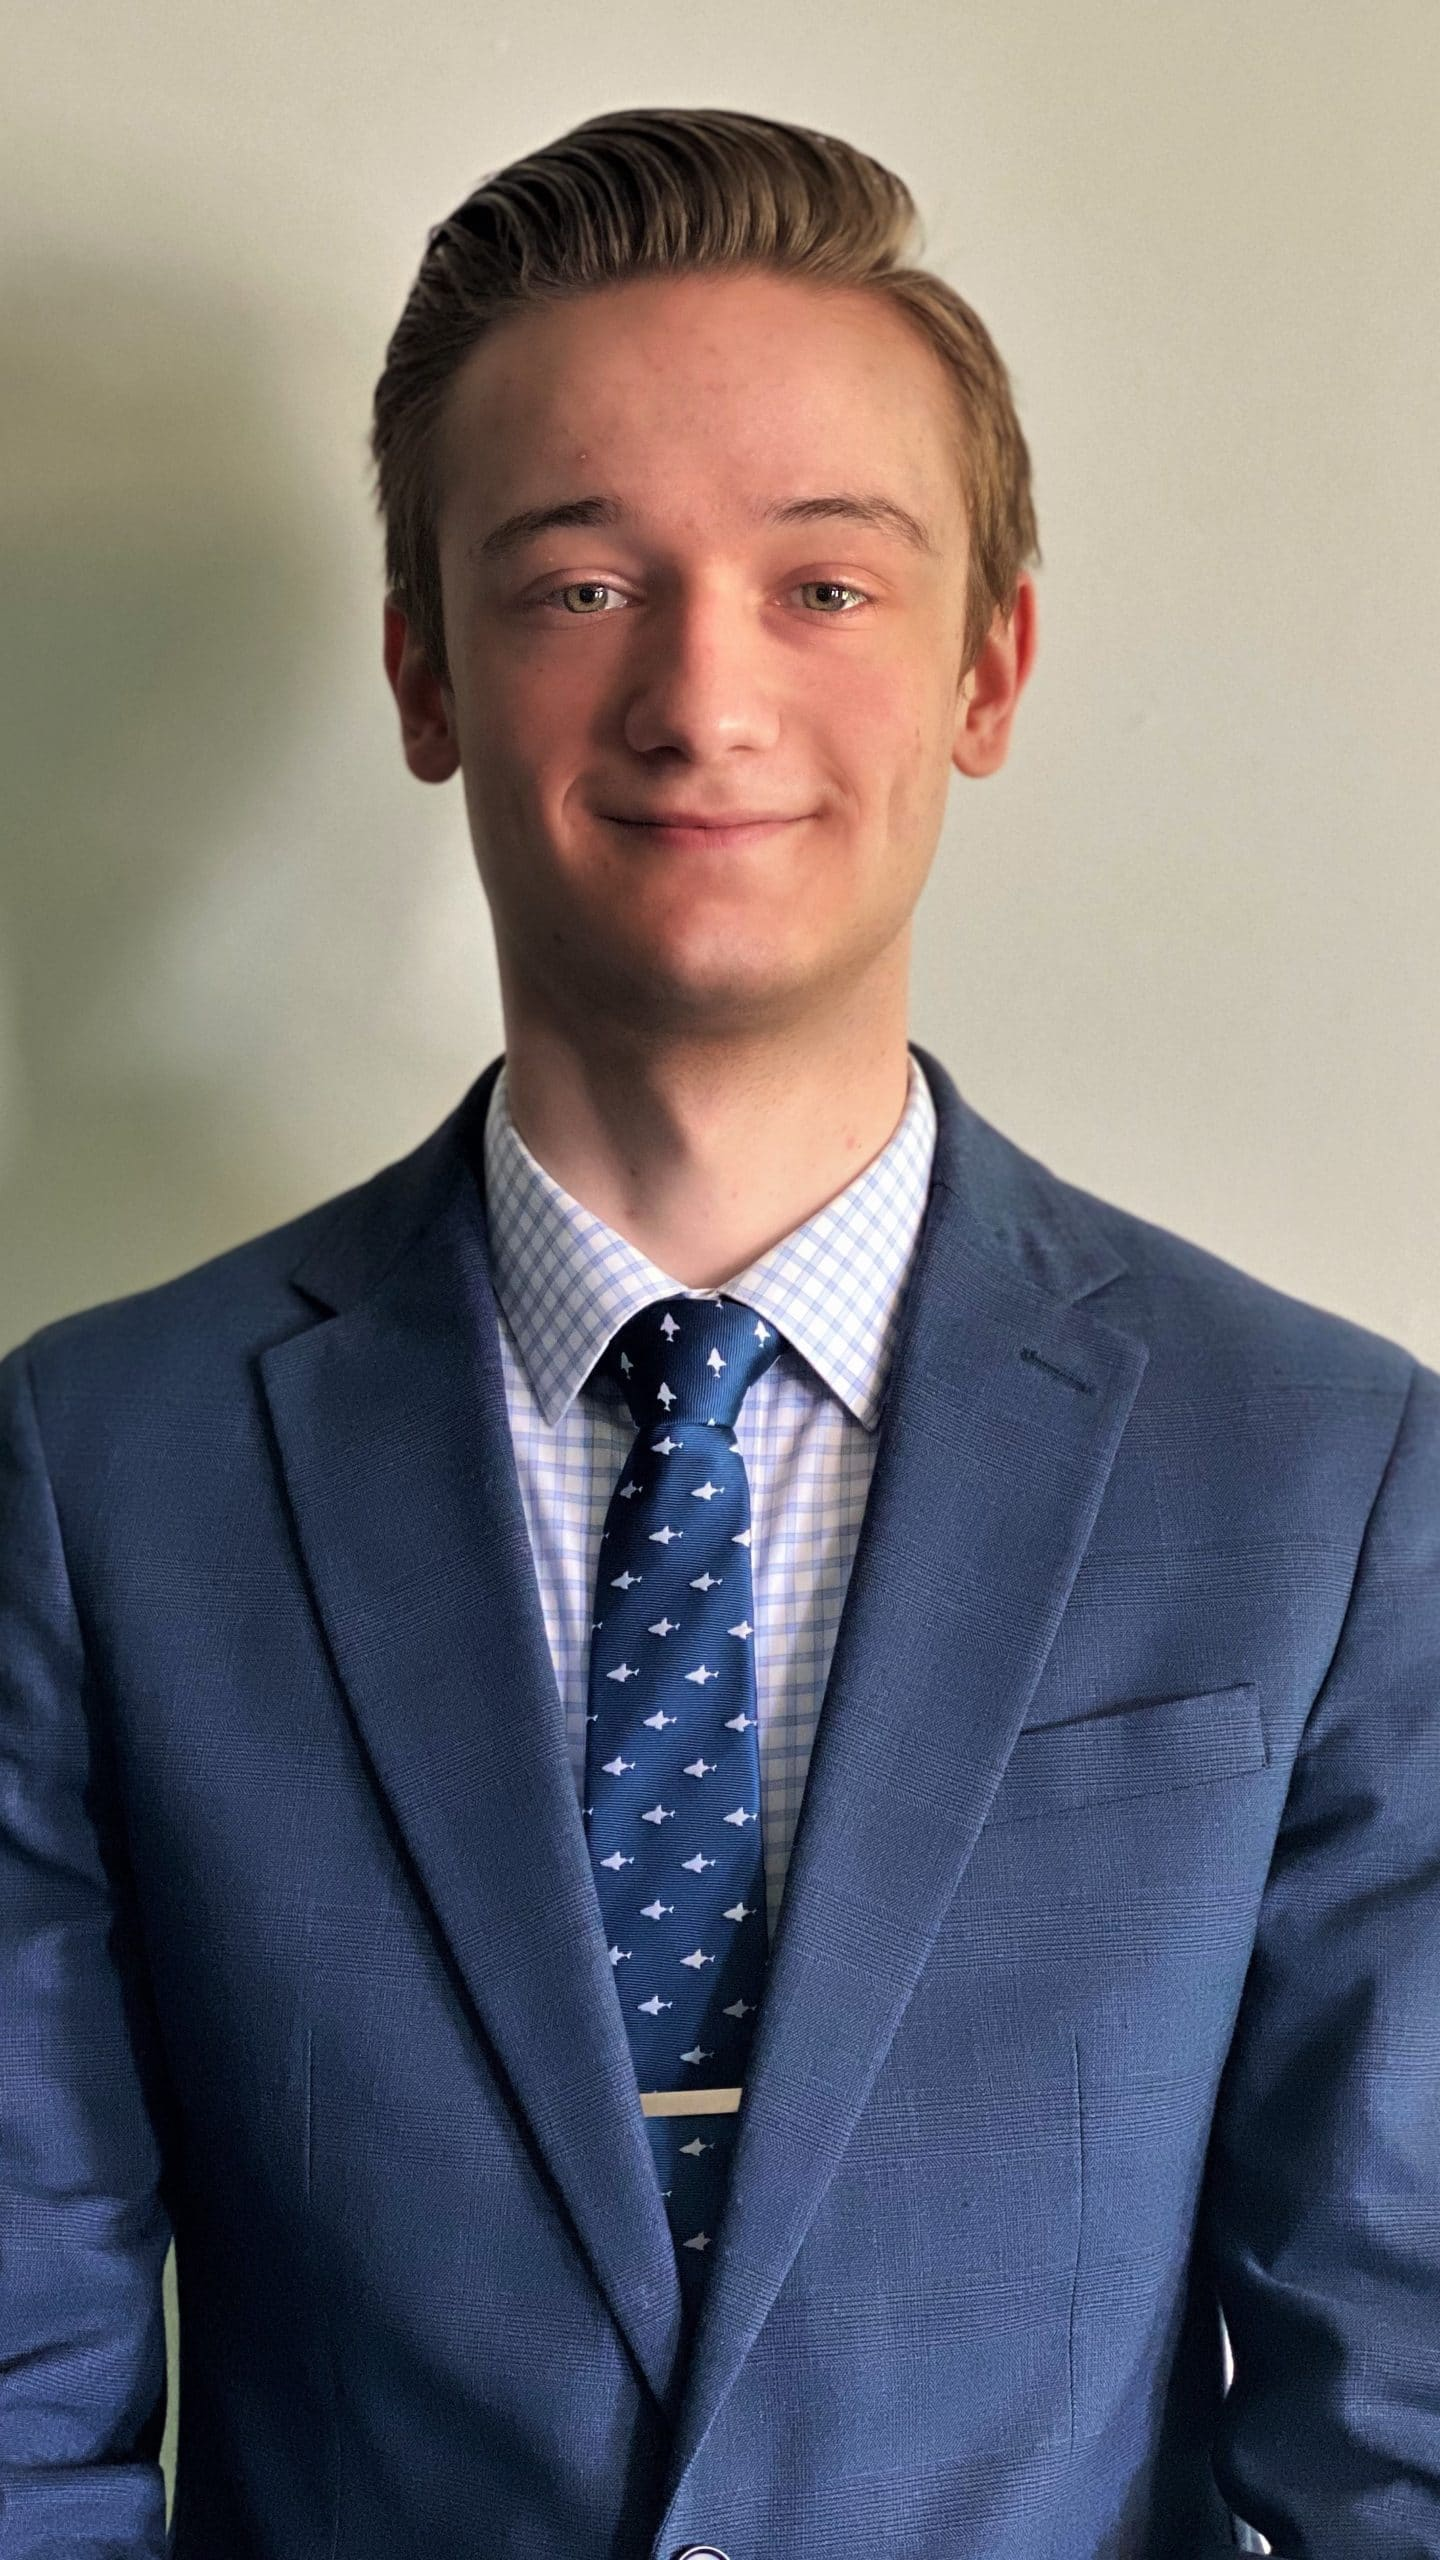 Zone Psychology - Thomas Benowicz is a fourth year student at the University of Alberta, working towards a Bachelor of Science degree in Psychology (Honors Program).